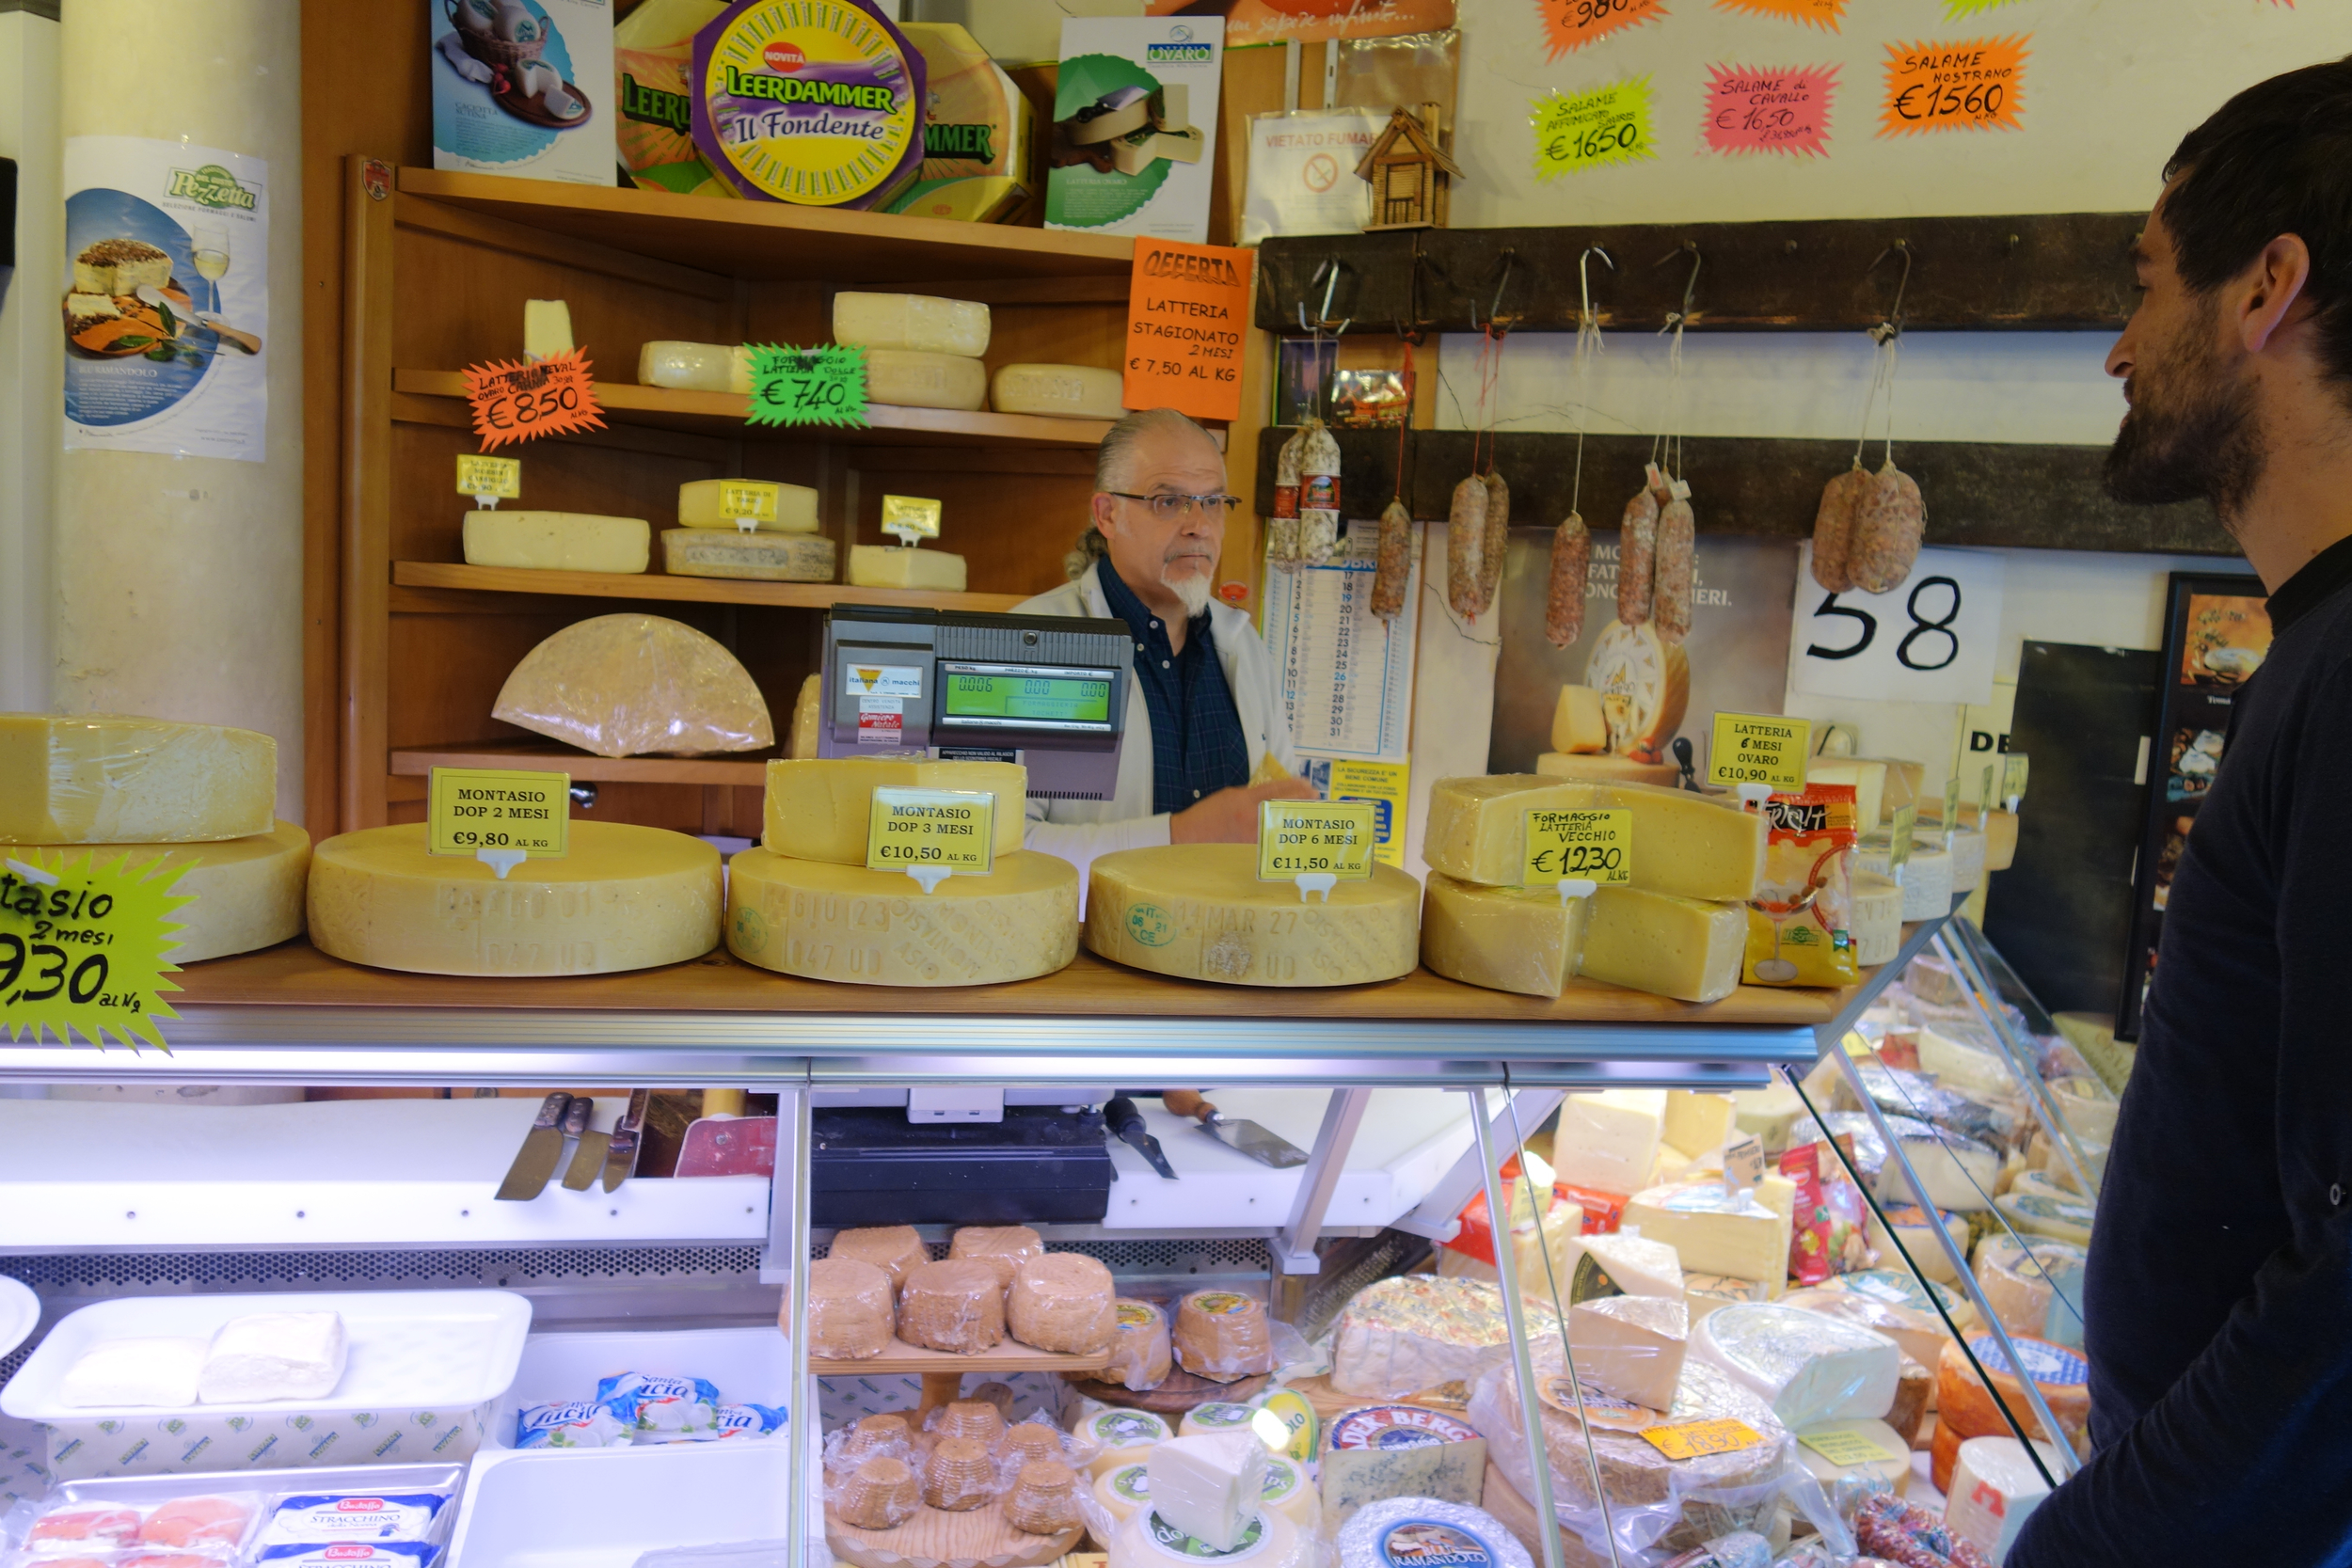 Classiest cheese shop owner as well...